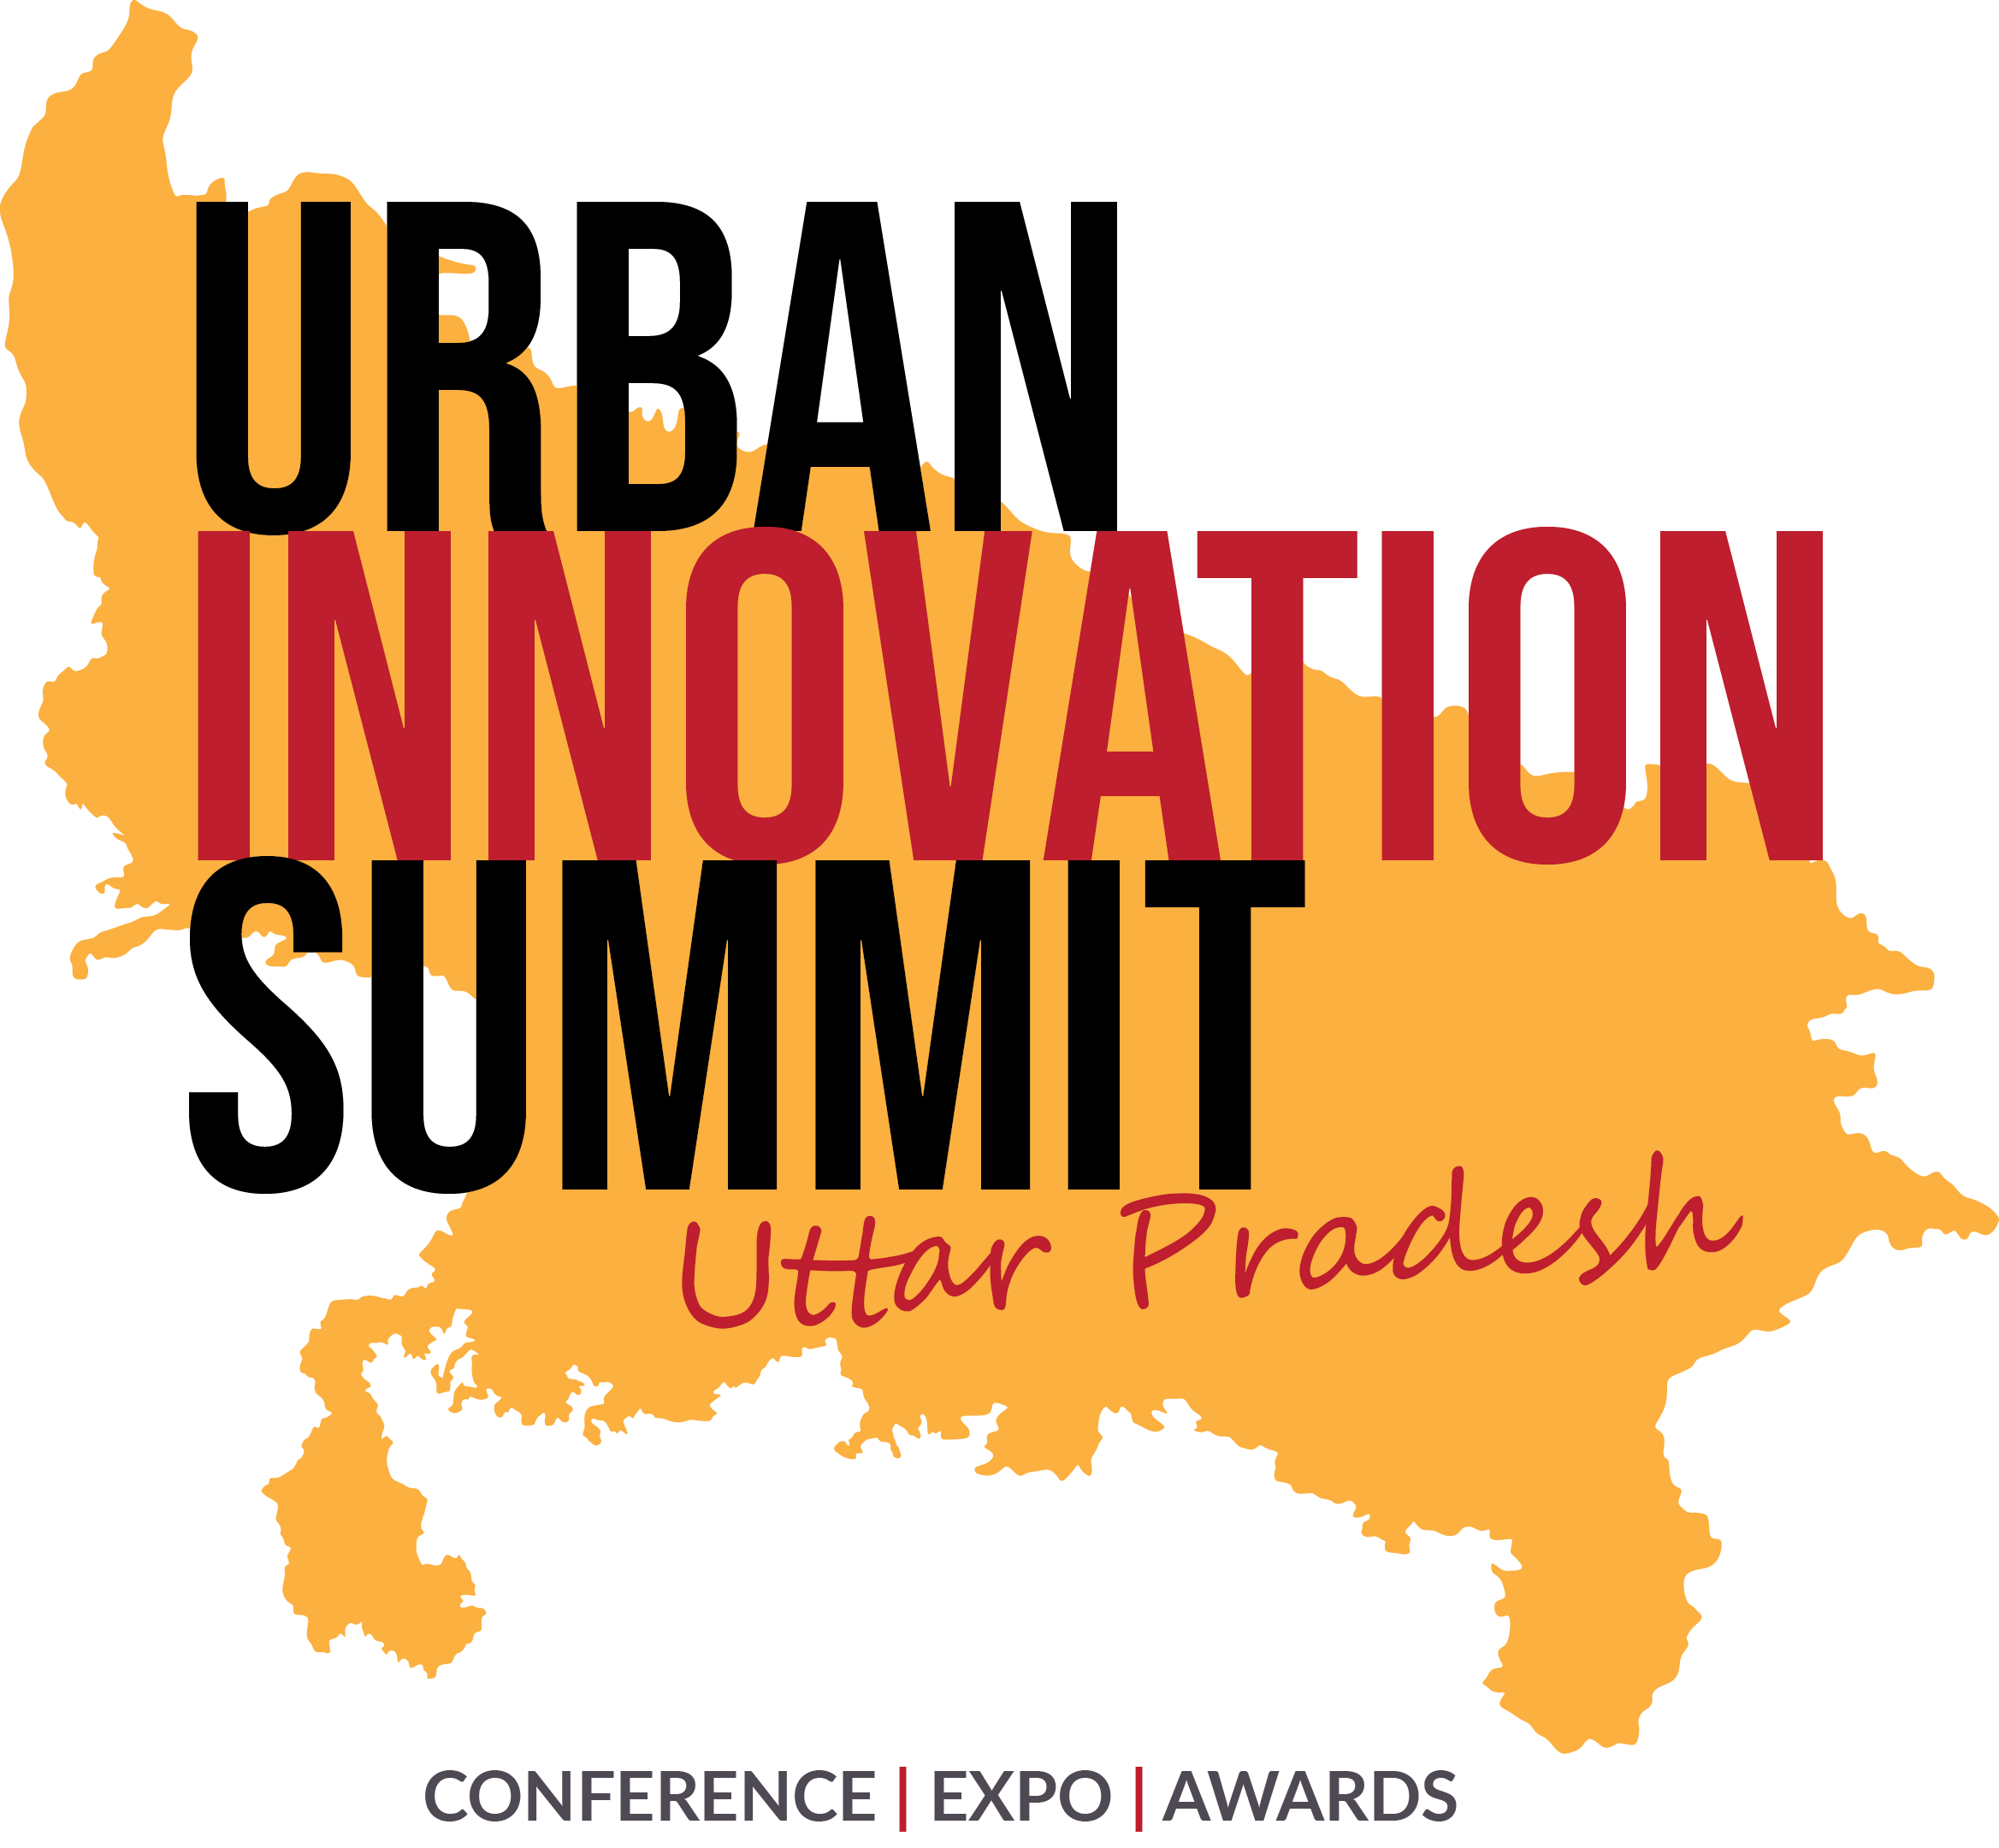 Urban Innovation Summit, Uttar Pradesh